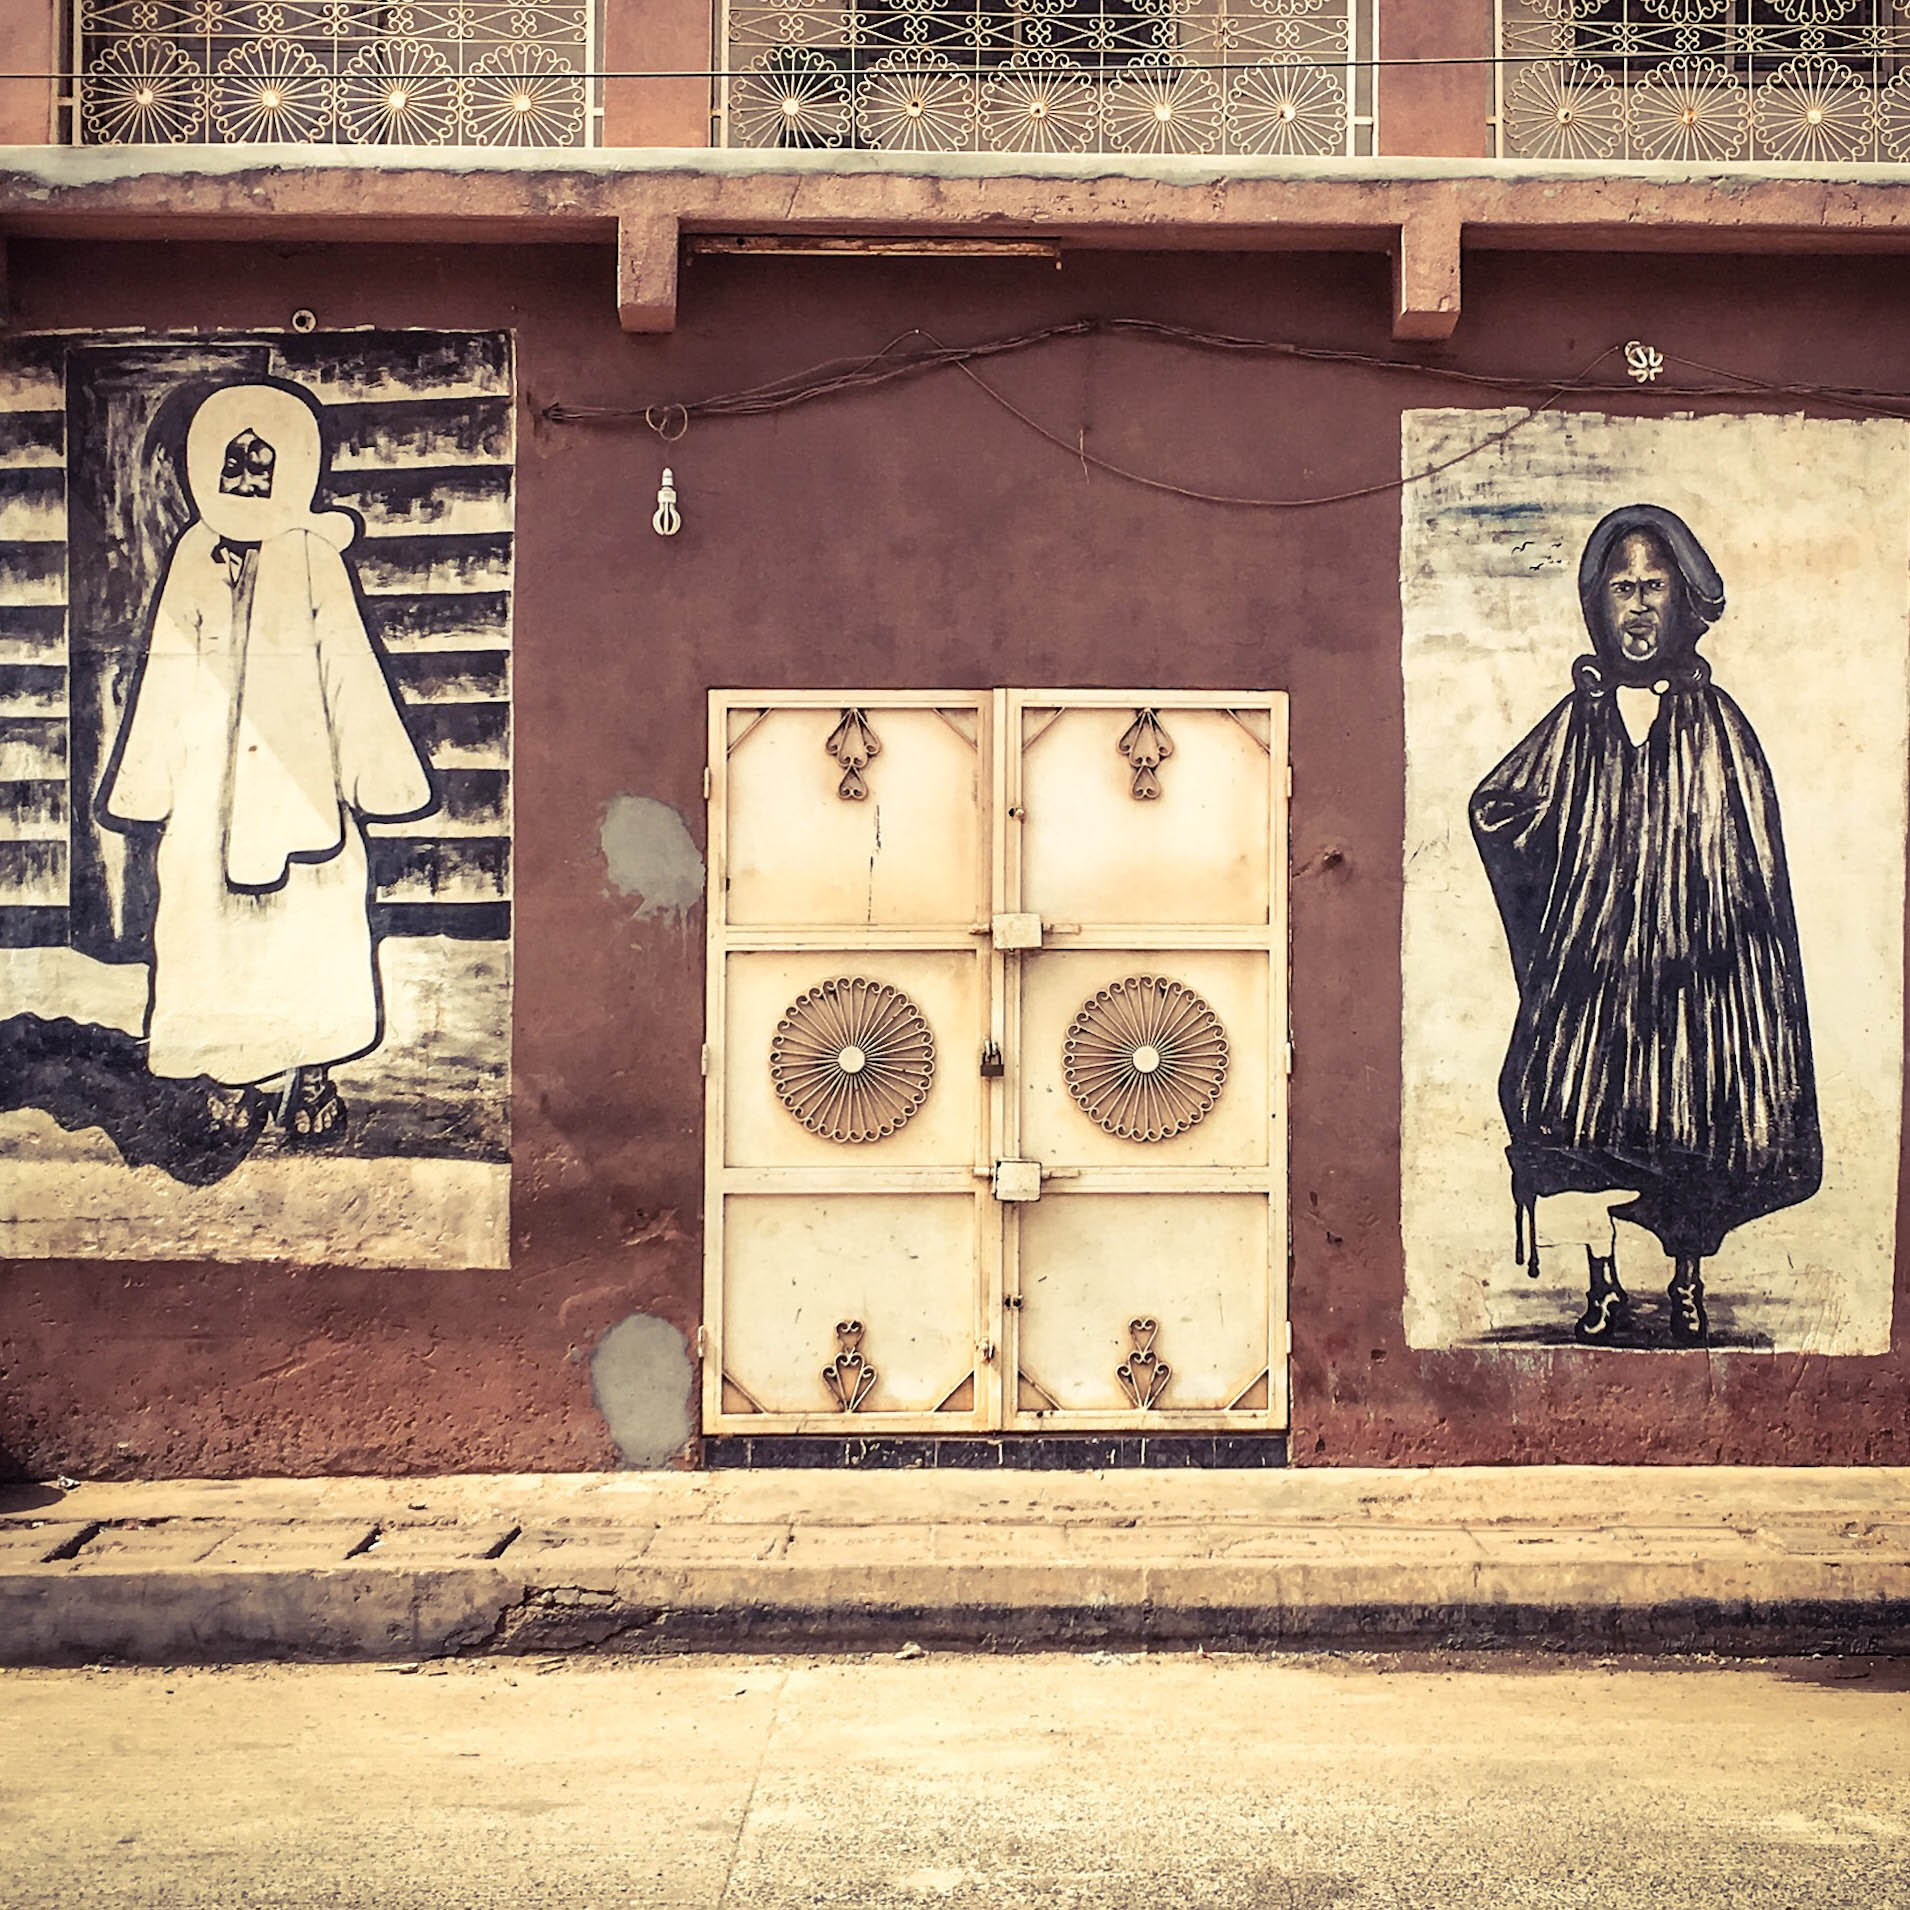 #GambiaDoors: Doors and Storefronts of The Gambia, West Africa. Mural's depicting disciples, Lamp Faal and Baye Faal, of the Mouride Sufi Brotherhood, Banjul. Image ©Helen Jones-Florio